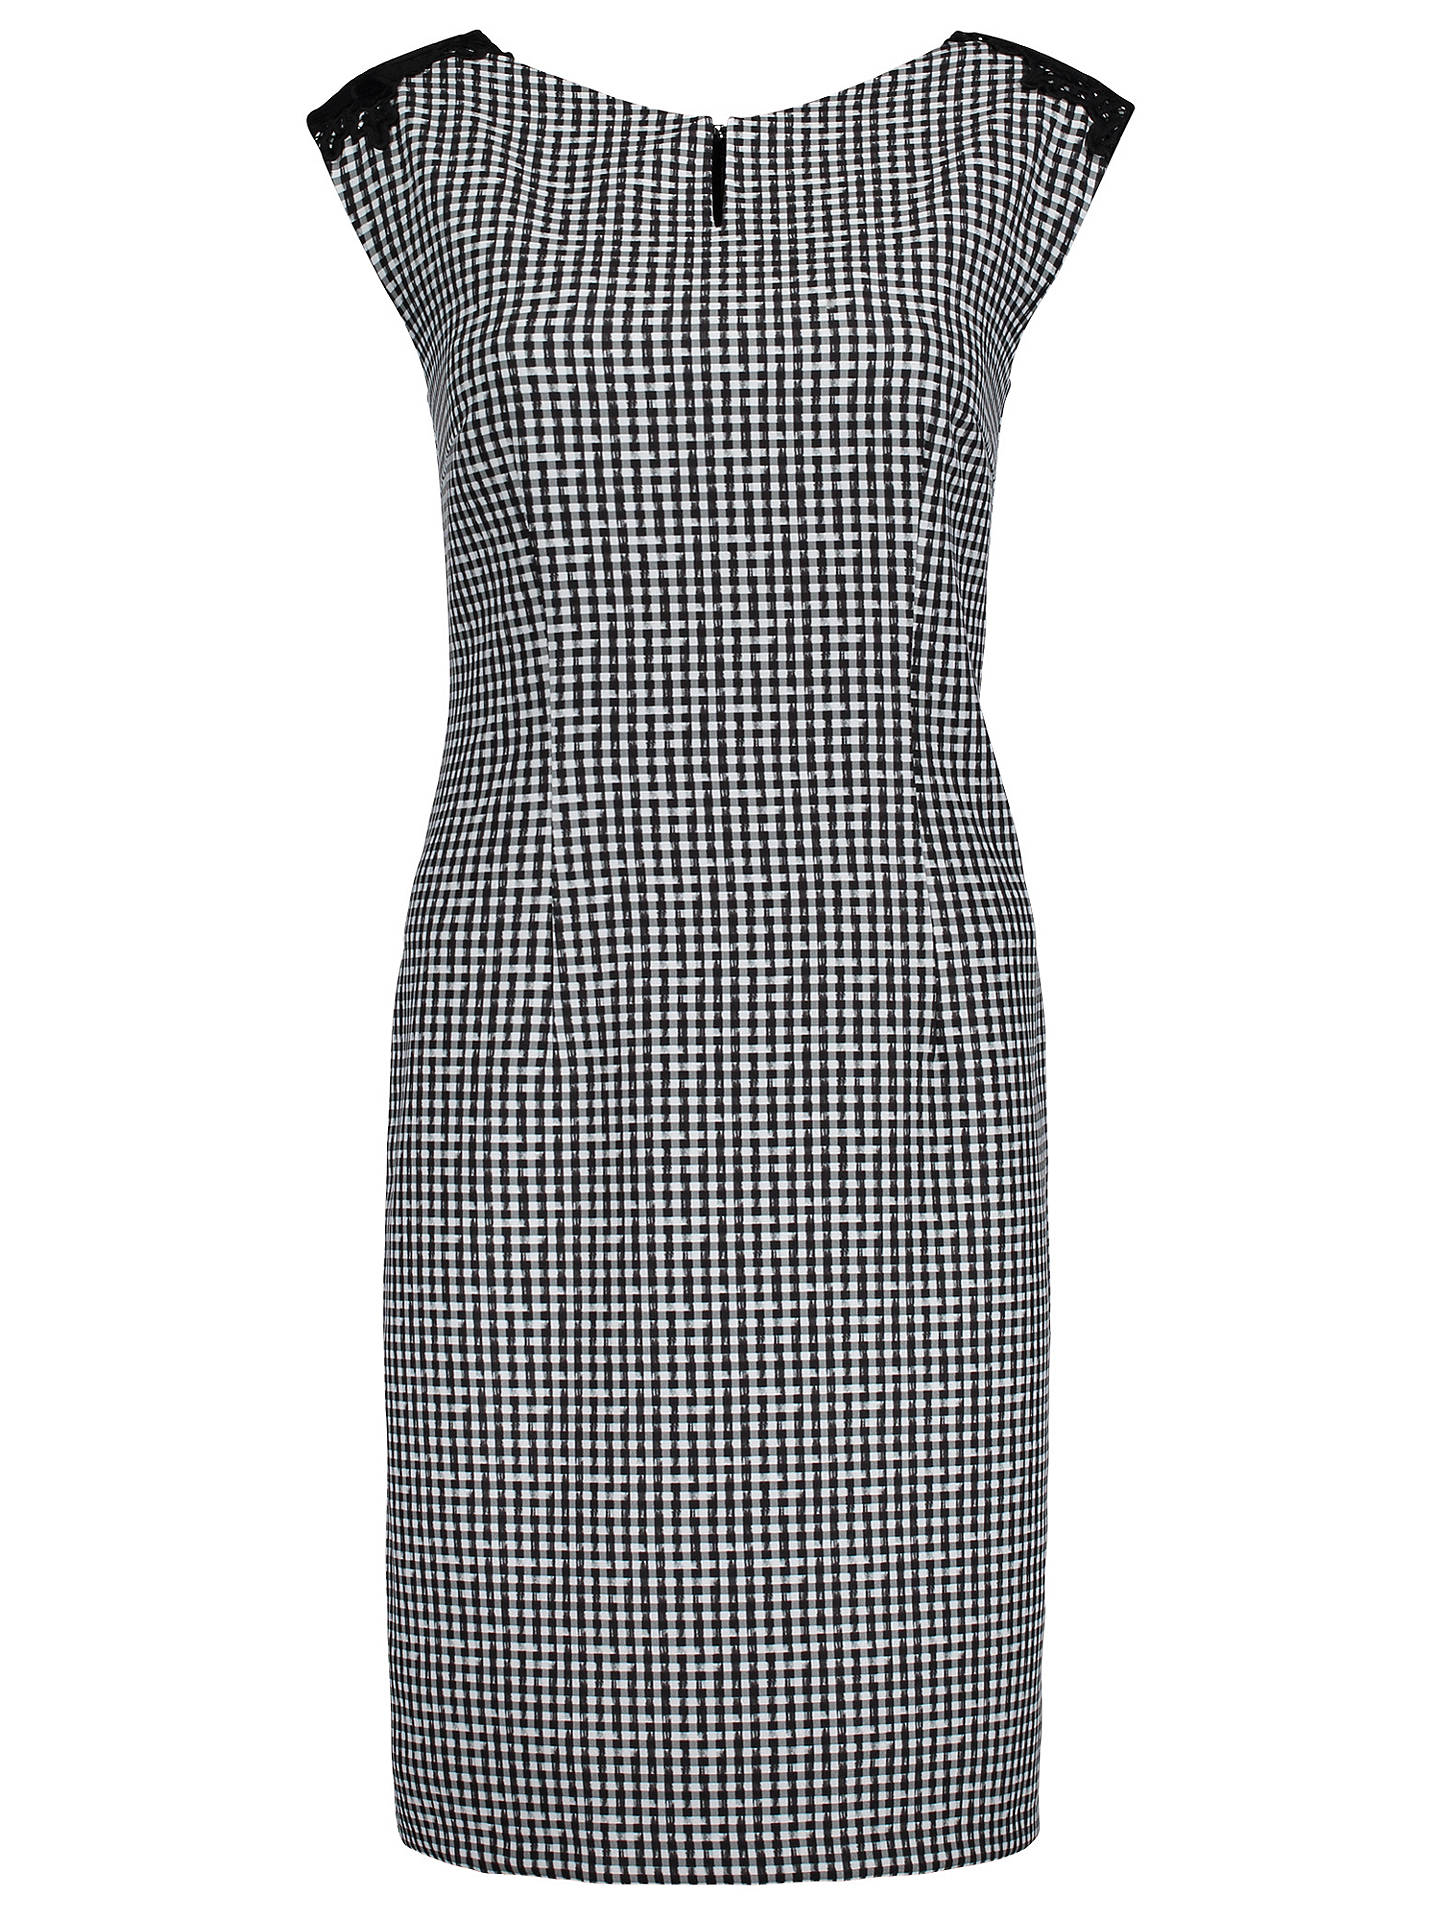 Buy Betty & Co. Gingham Shift Dress, Black/White, 10 Online at johnlewis.com